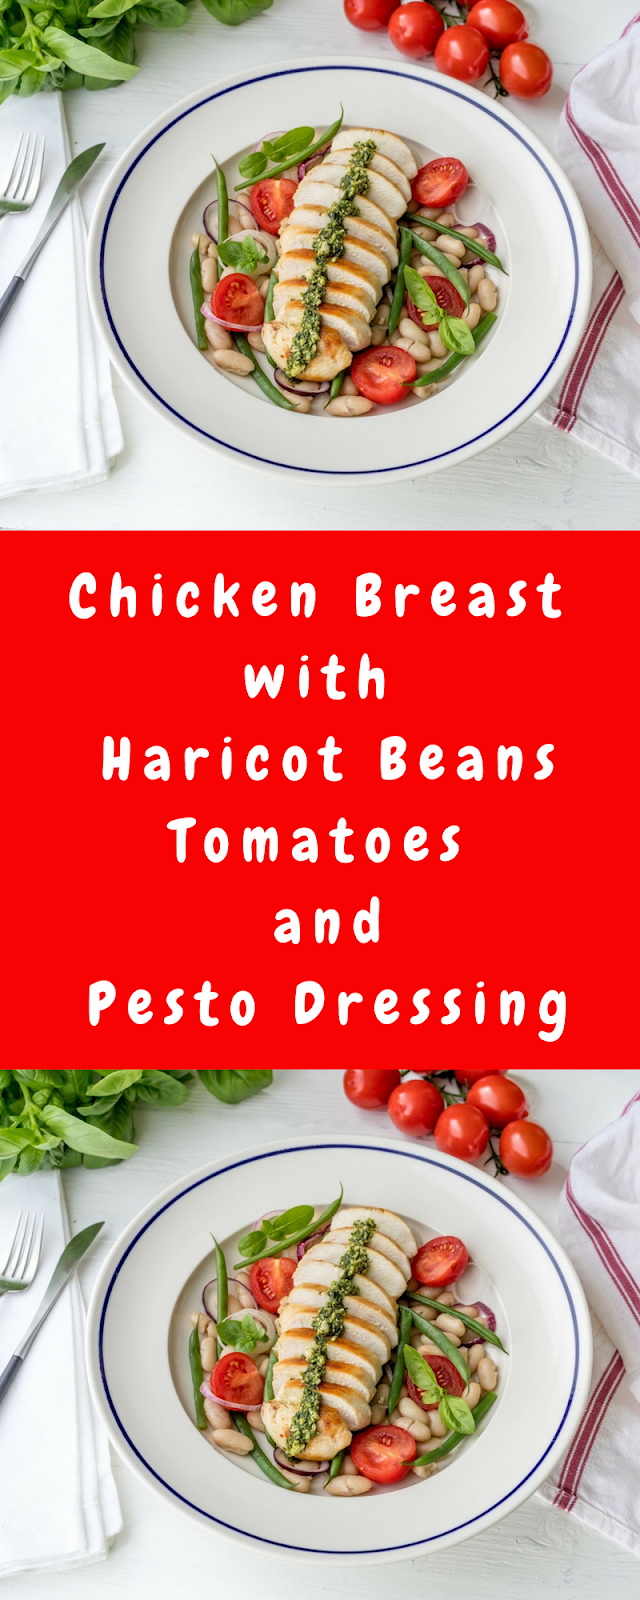 Chicken Breast with Haricot Beans, Tomatoes And Pesto Dressing